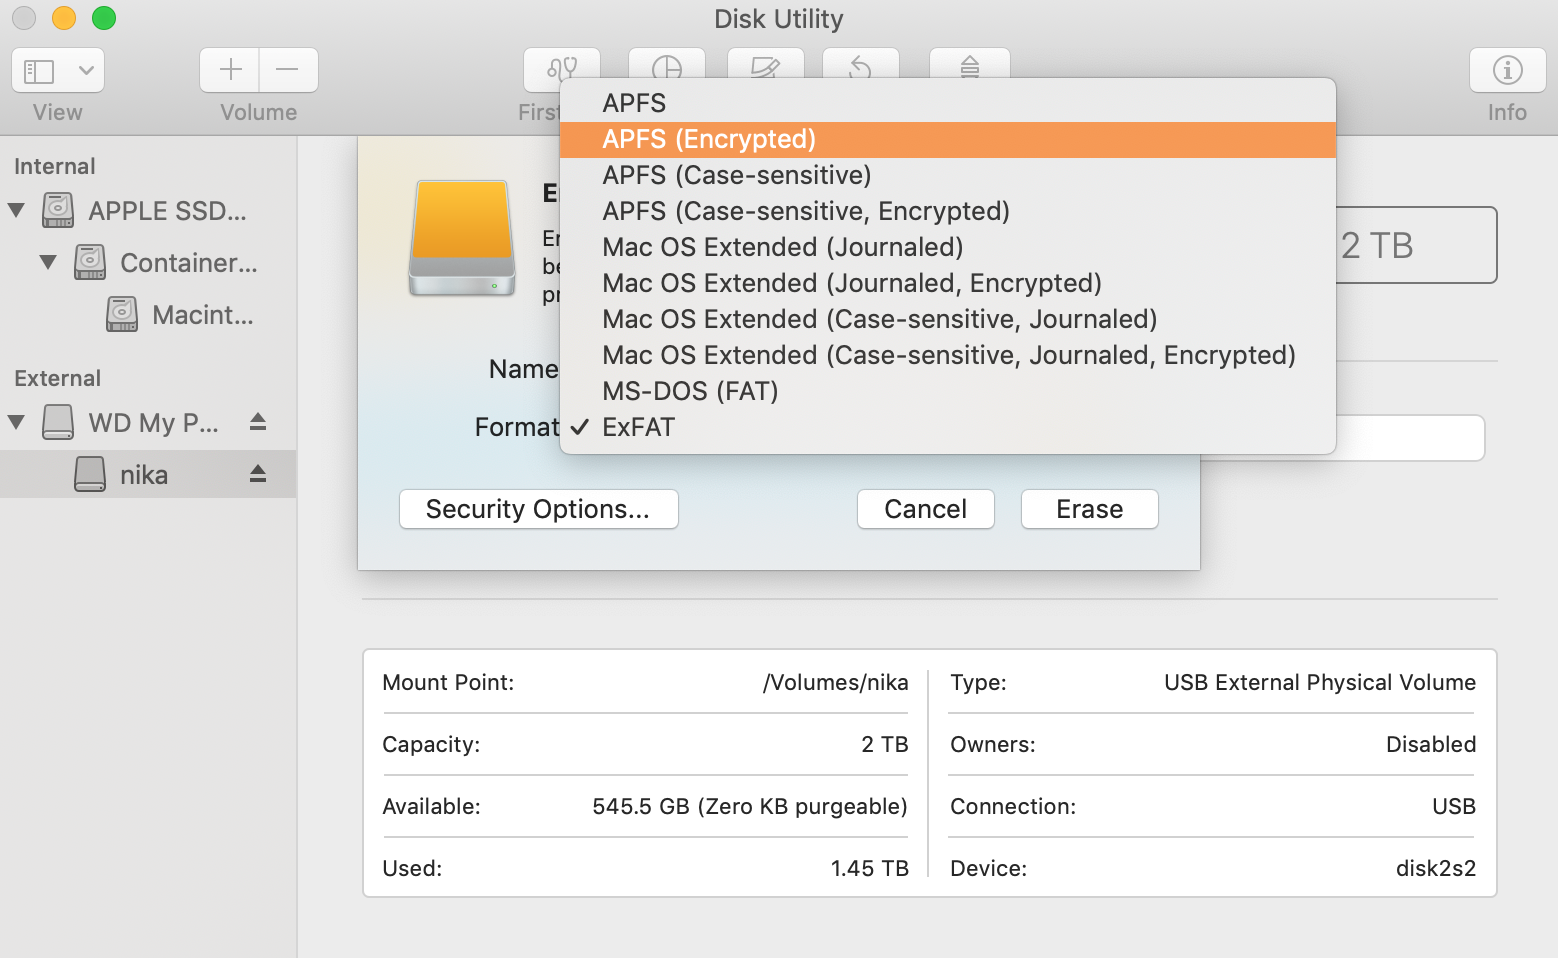 change format of external disk to encrypted APFS in disk utility